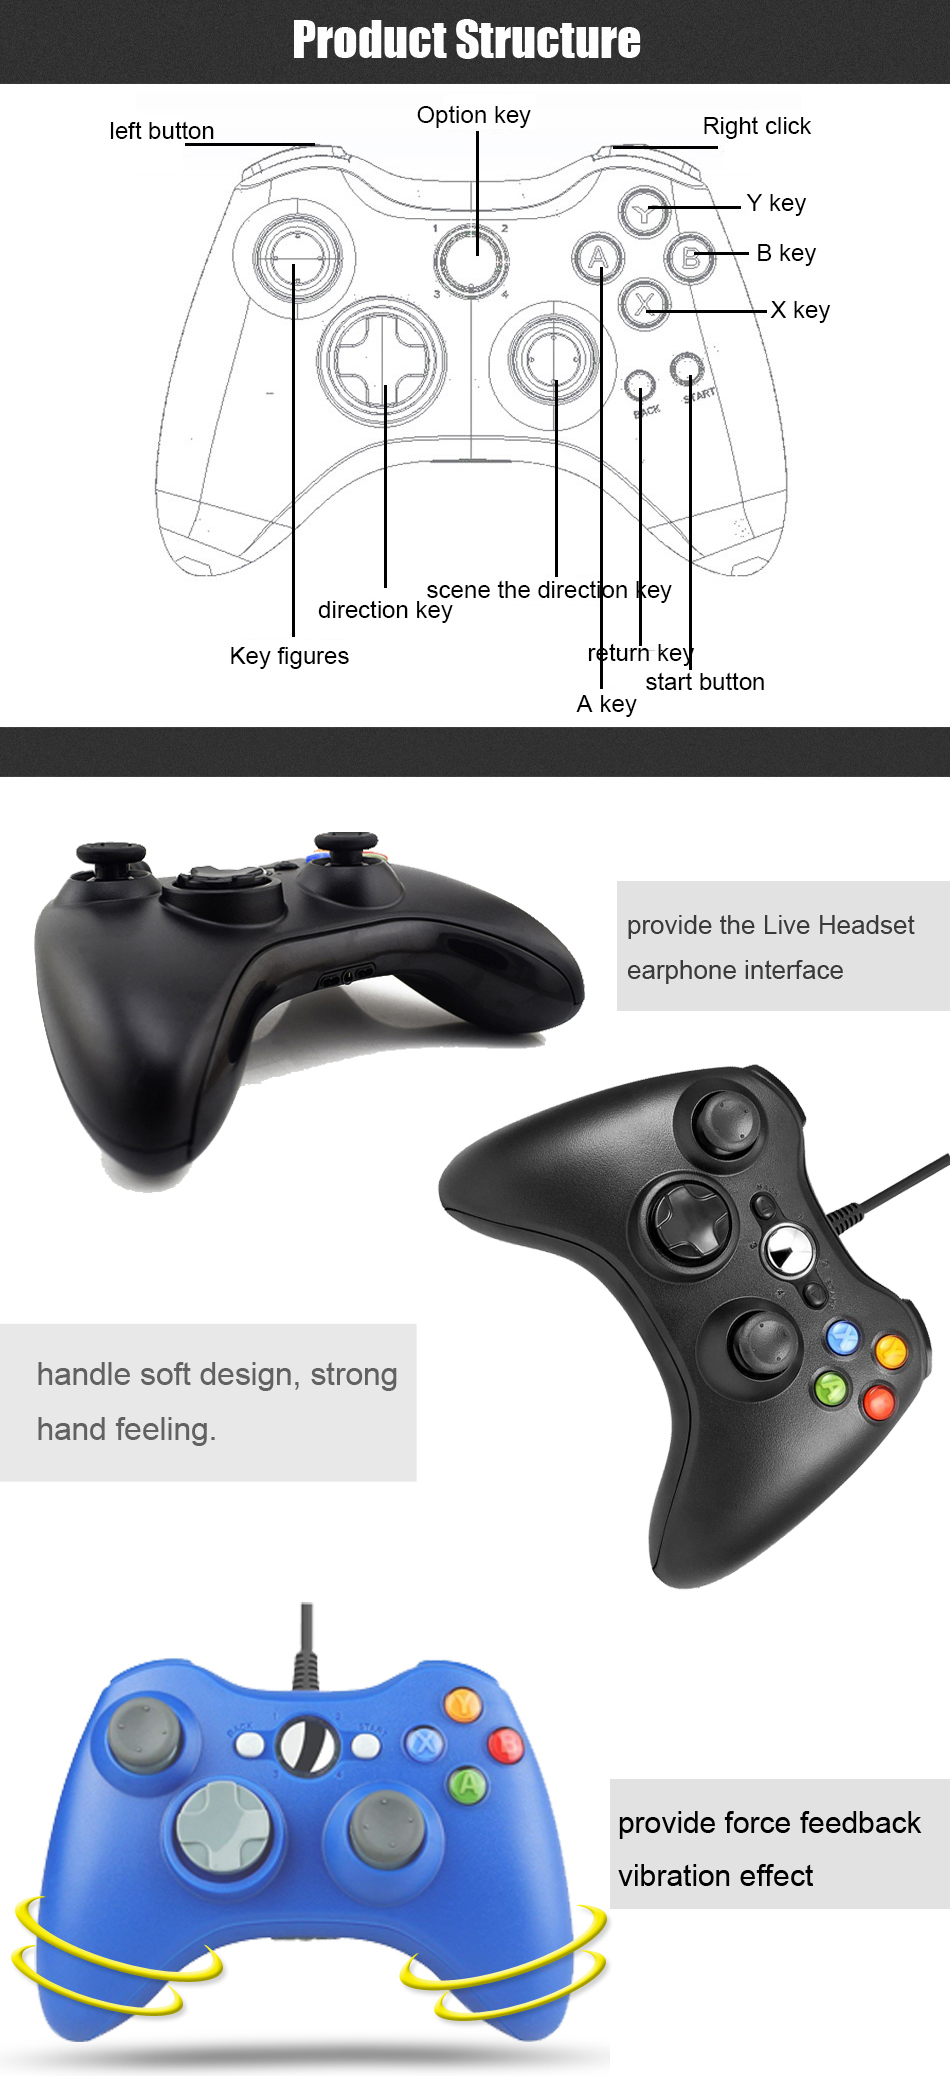 US $18 94 |USB Wired Joypad Gamepad Gaming Controller For Microsoft For  Xbox Slim 360 For PC Gamer Android Smart TV Box Joystick Game Pad-in  Gamepads